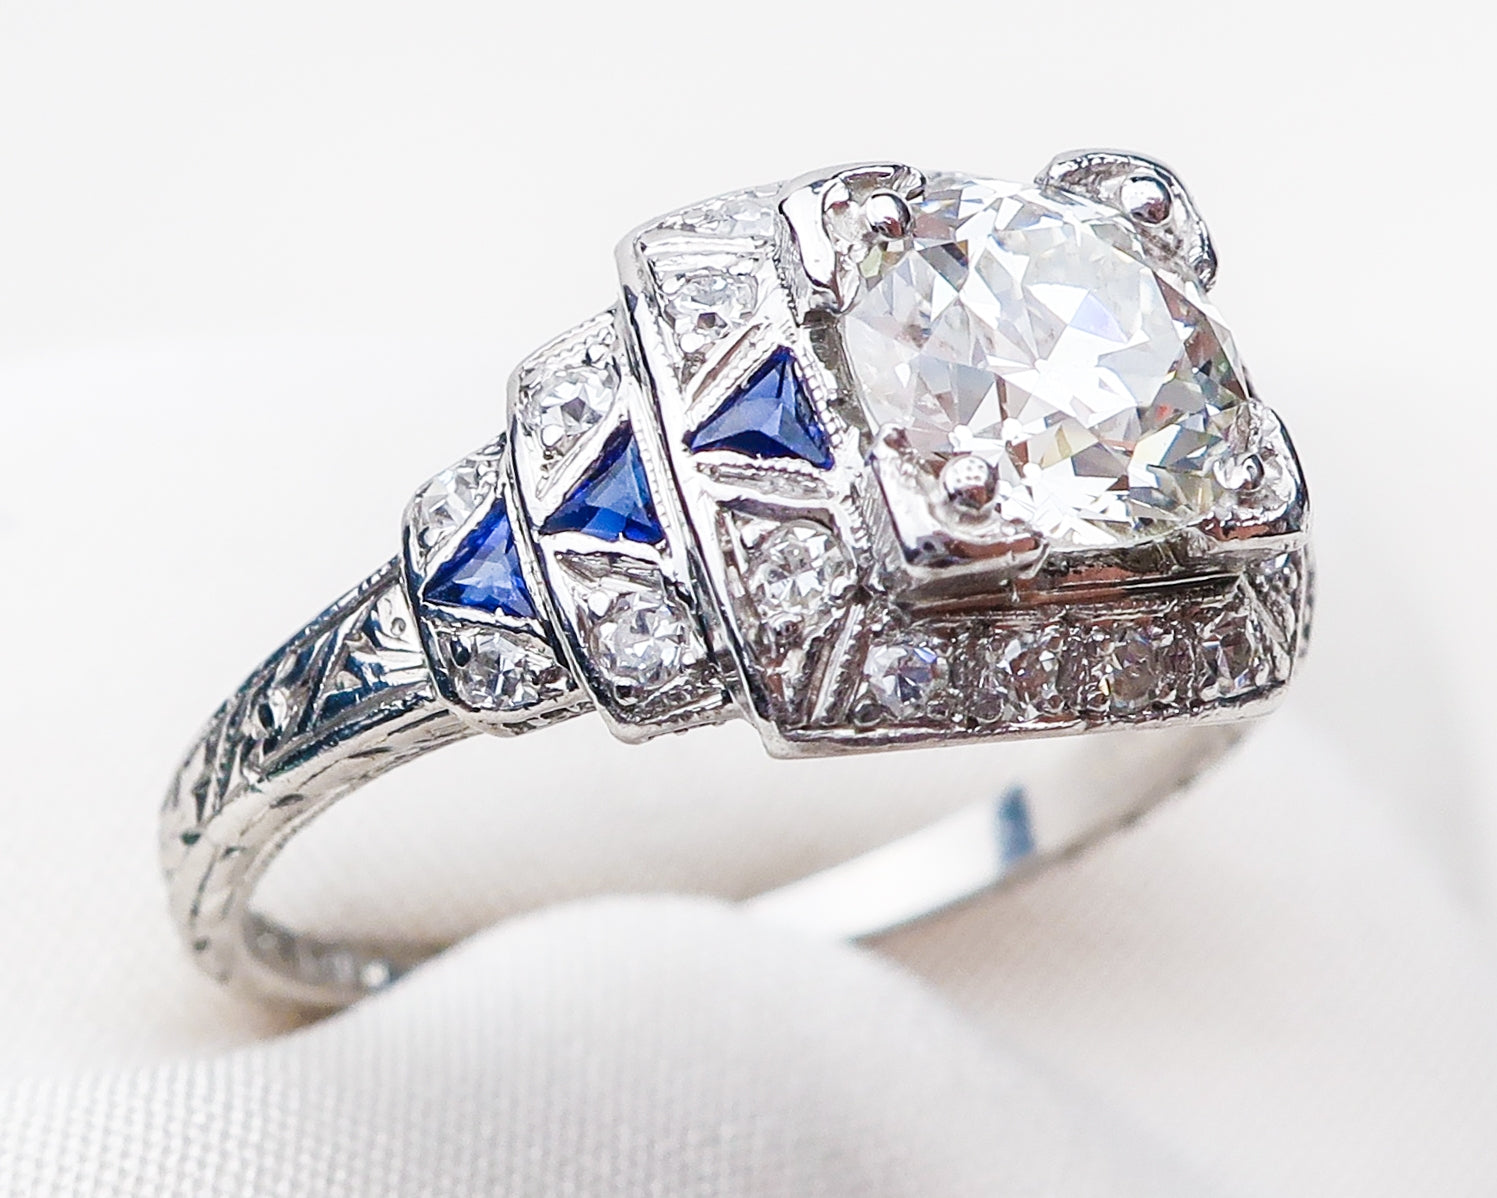 Art Deco Diamond Ring With Synthetic Sapphire Accents Isadoras